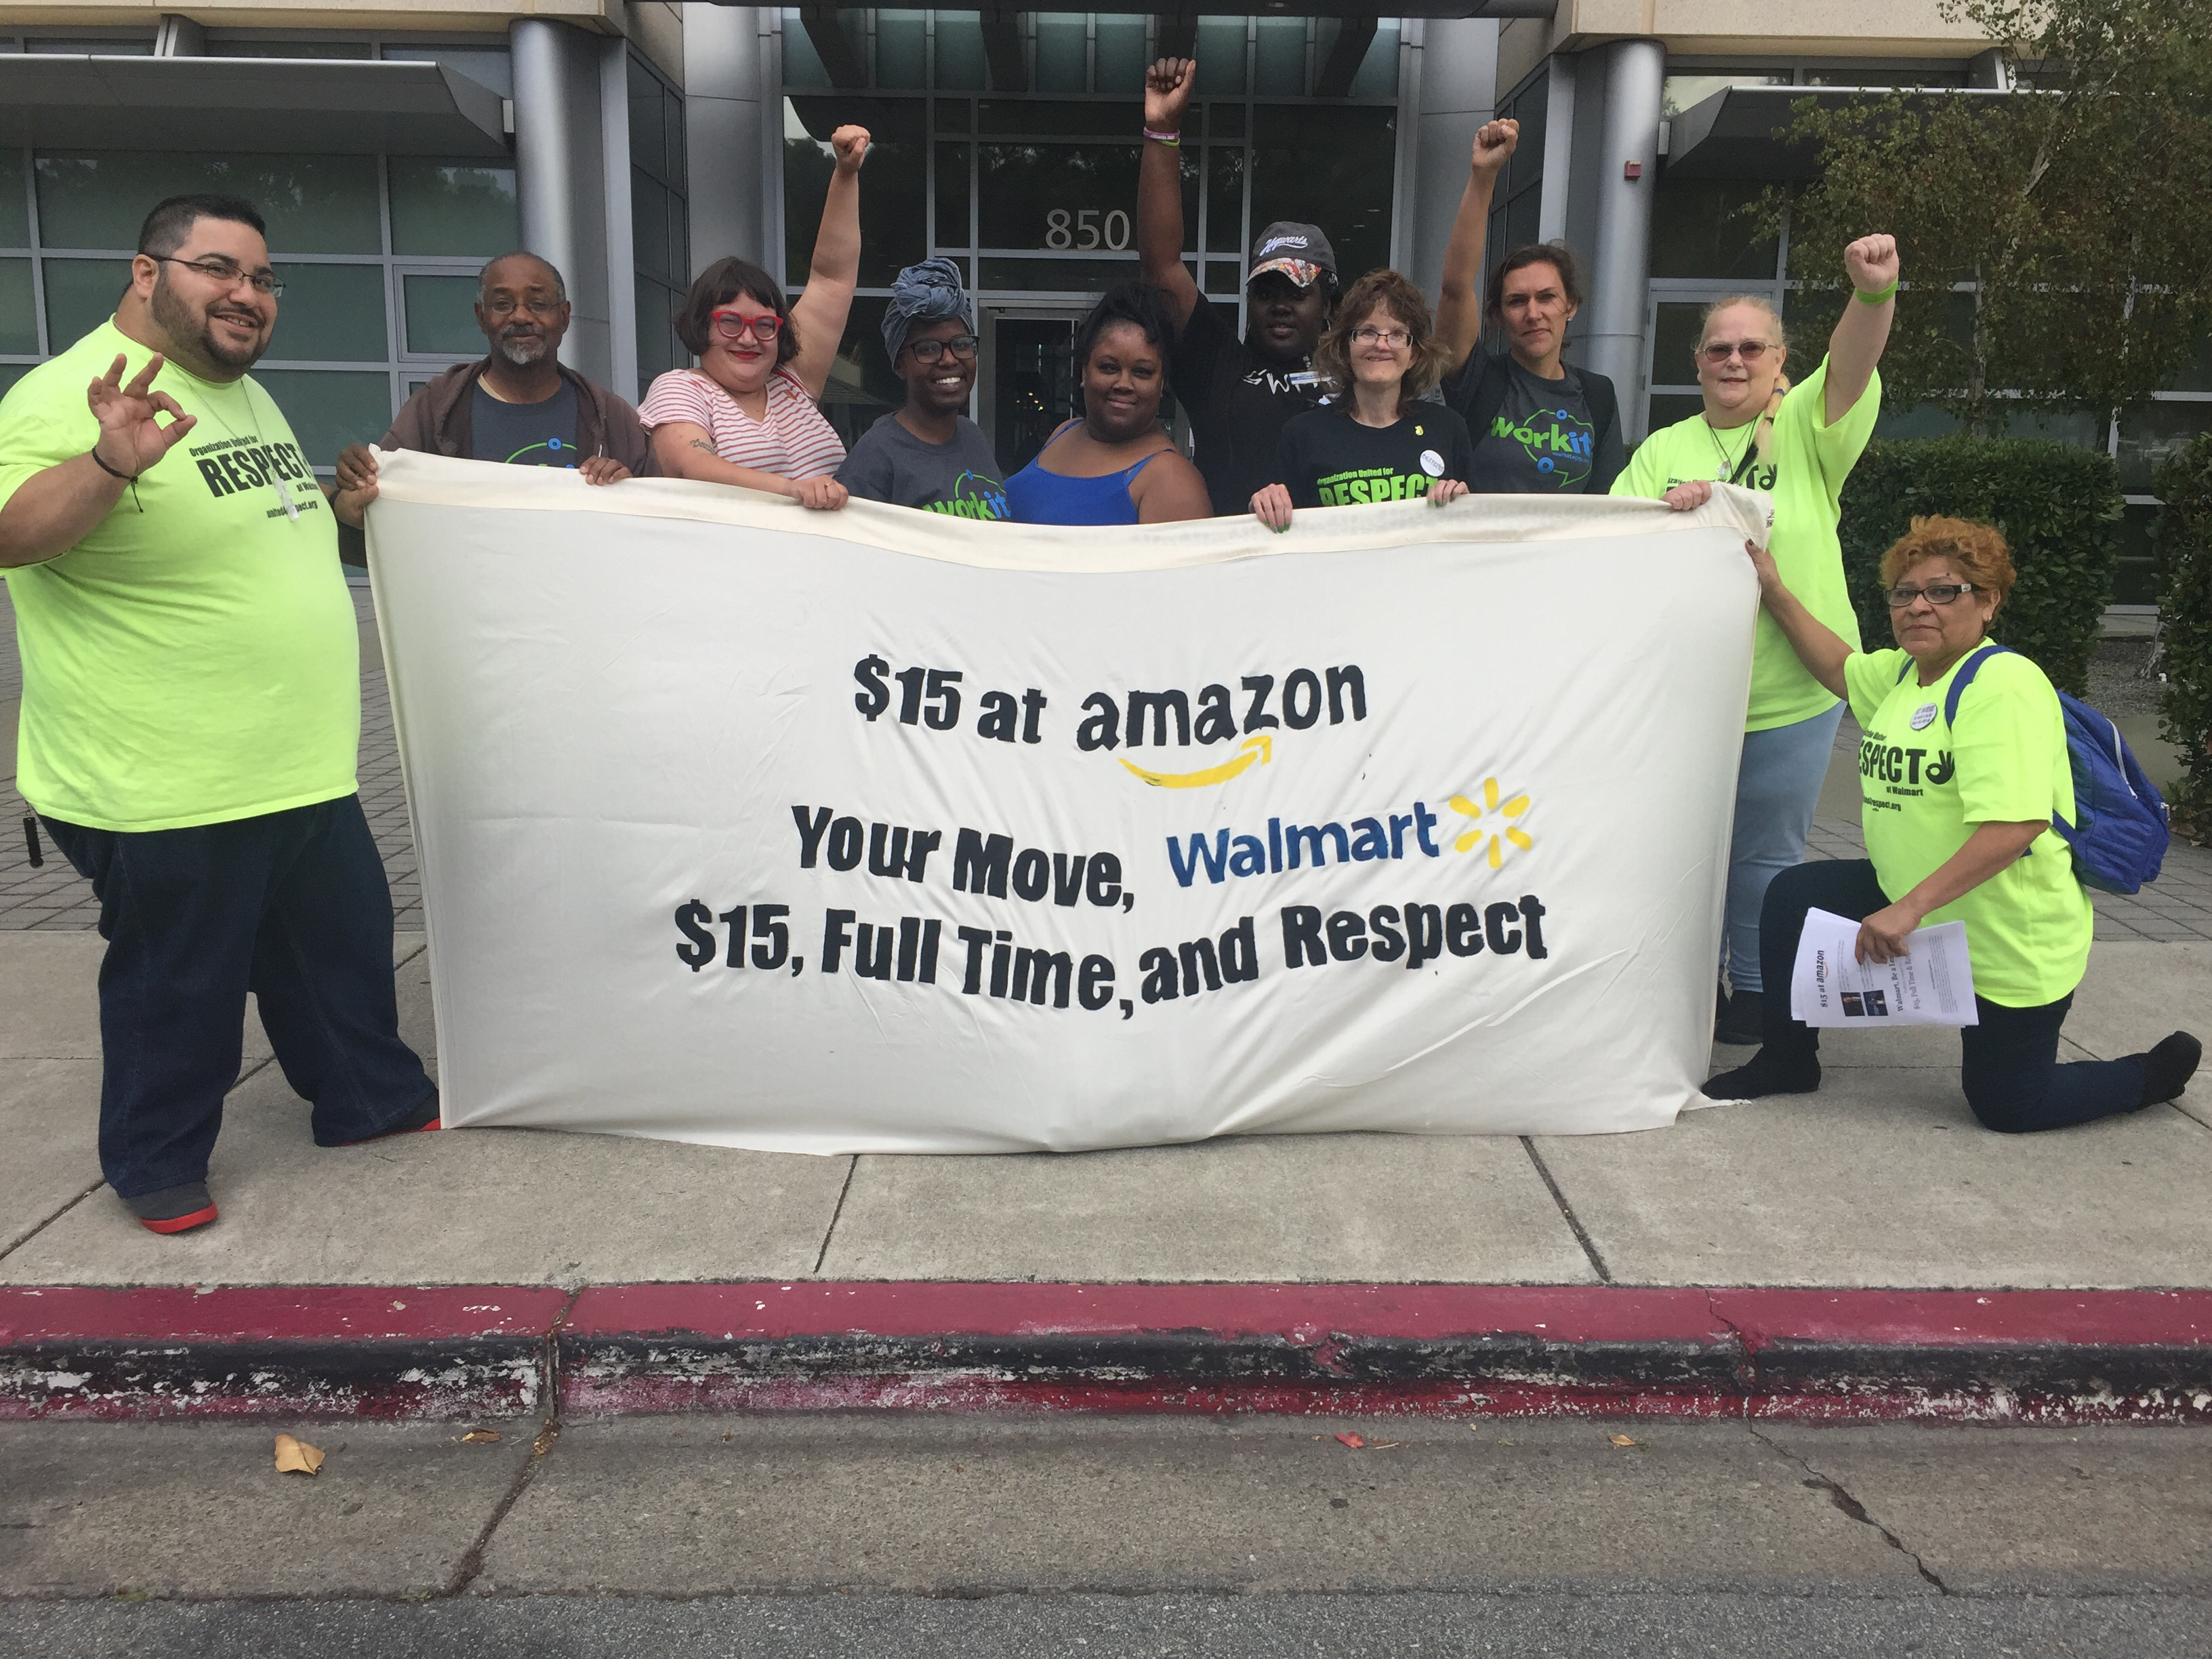 They Obviously Can Afford to': Workers Call On Walmart To Raise